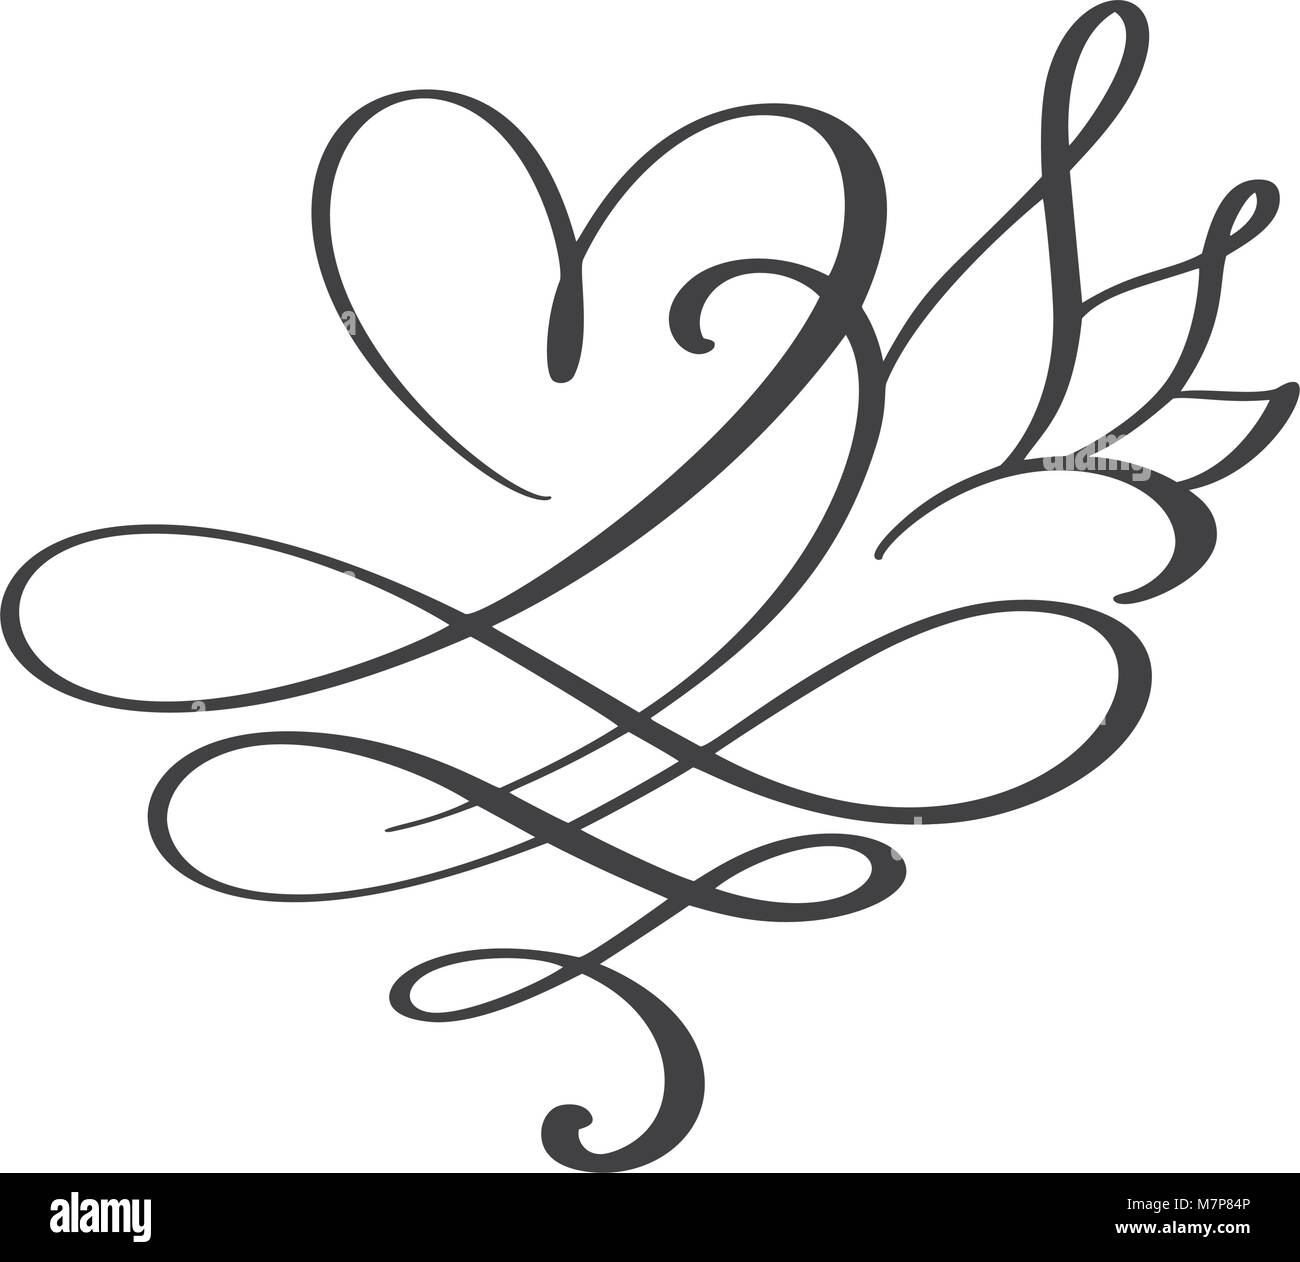 Infinity symbol drawing black and white stock photos images alamy heart love sign forever infinity romantic symbol linked join passion and wedding biocorpaavc Choice Image